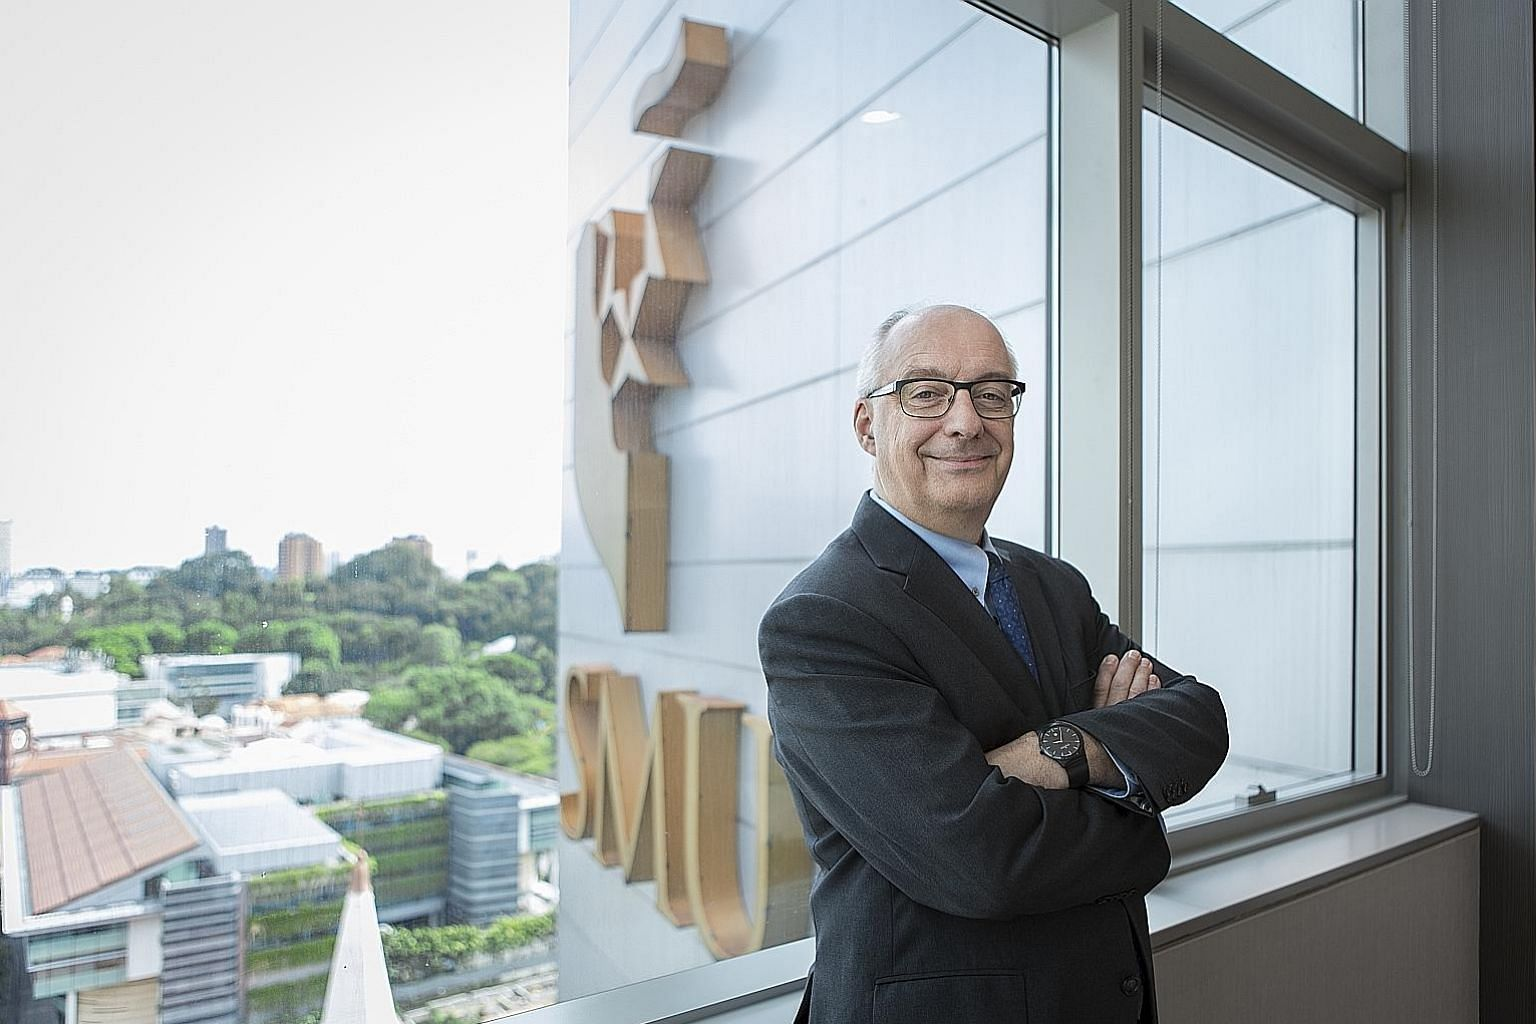 At the request of the SMU board, Professor Arnoud De Meyer has agreed to assume, on a part-time basis, a role in continuing to help shape SMU-X, an experiential learning programme.